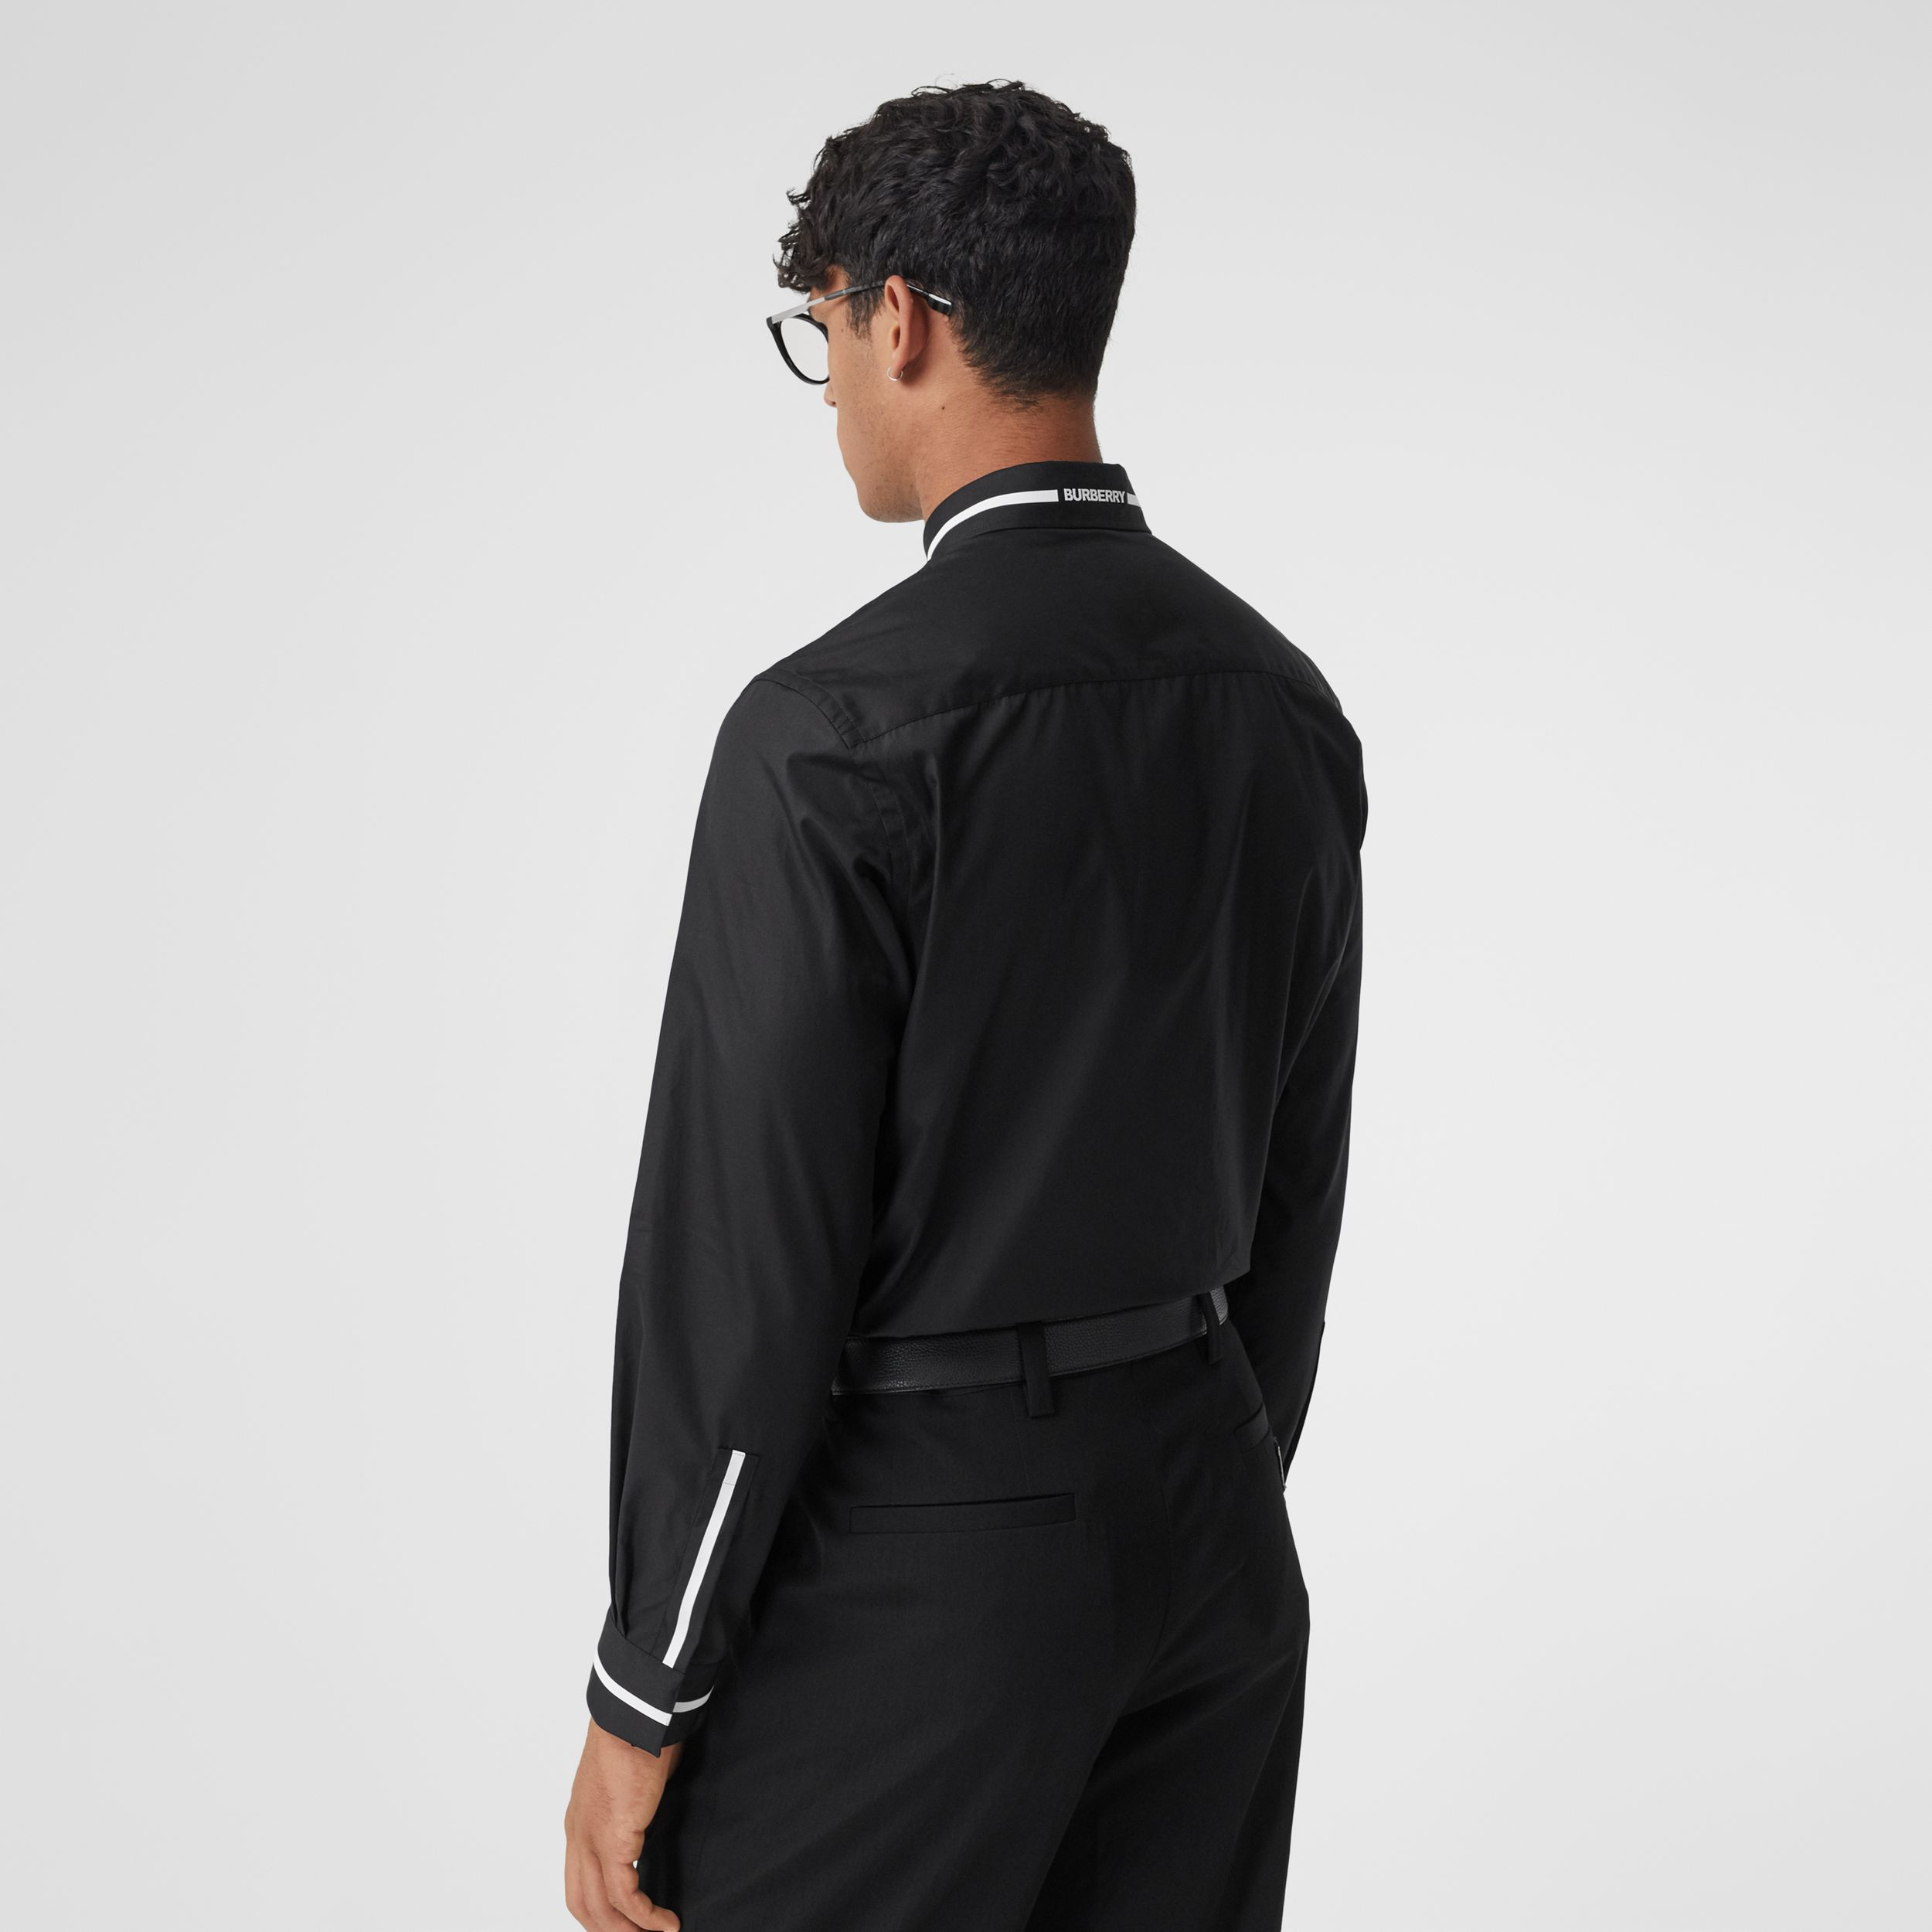 Logo Appliqué Cotton Poplin Shirt in Black - Men | Burberry - 3